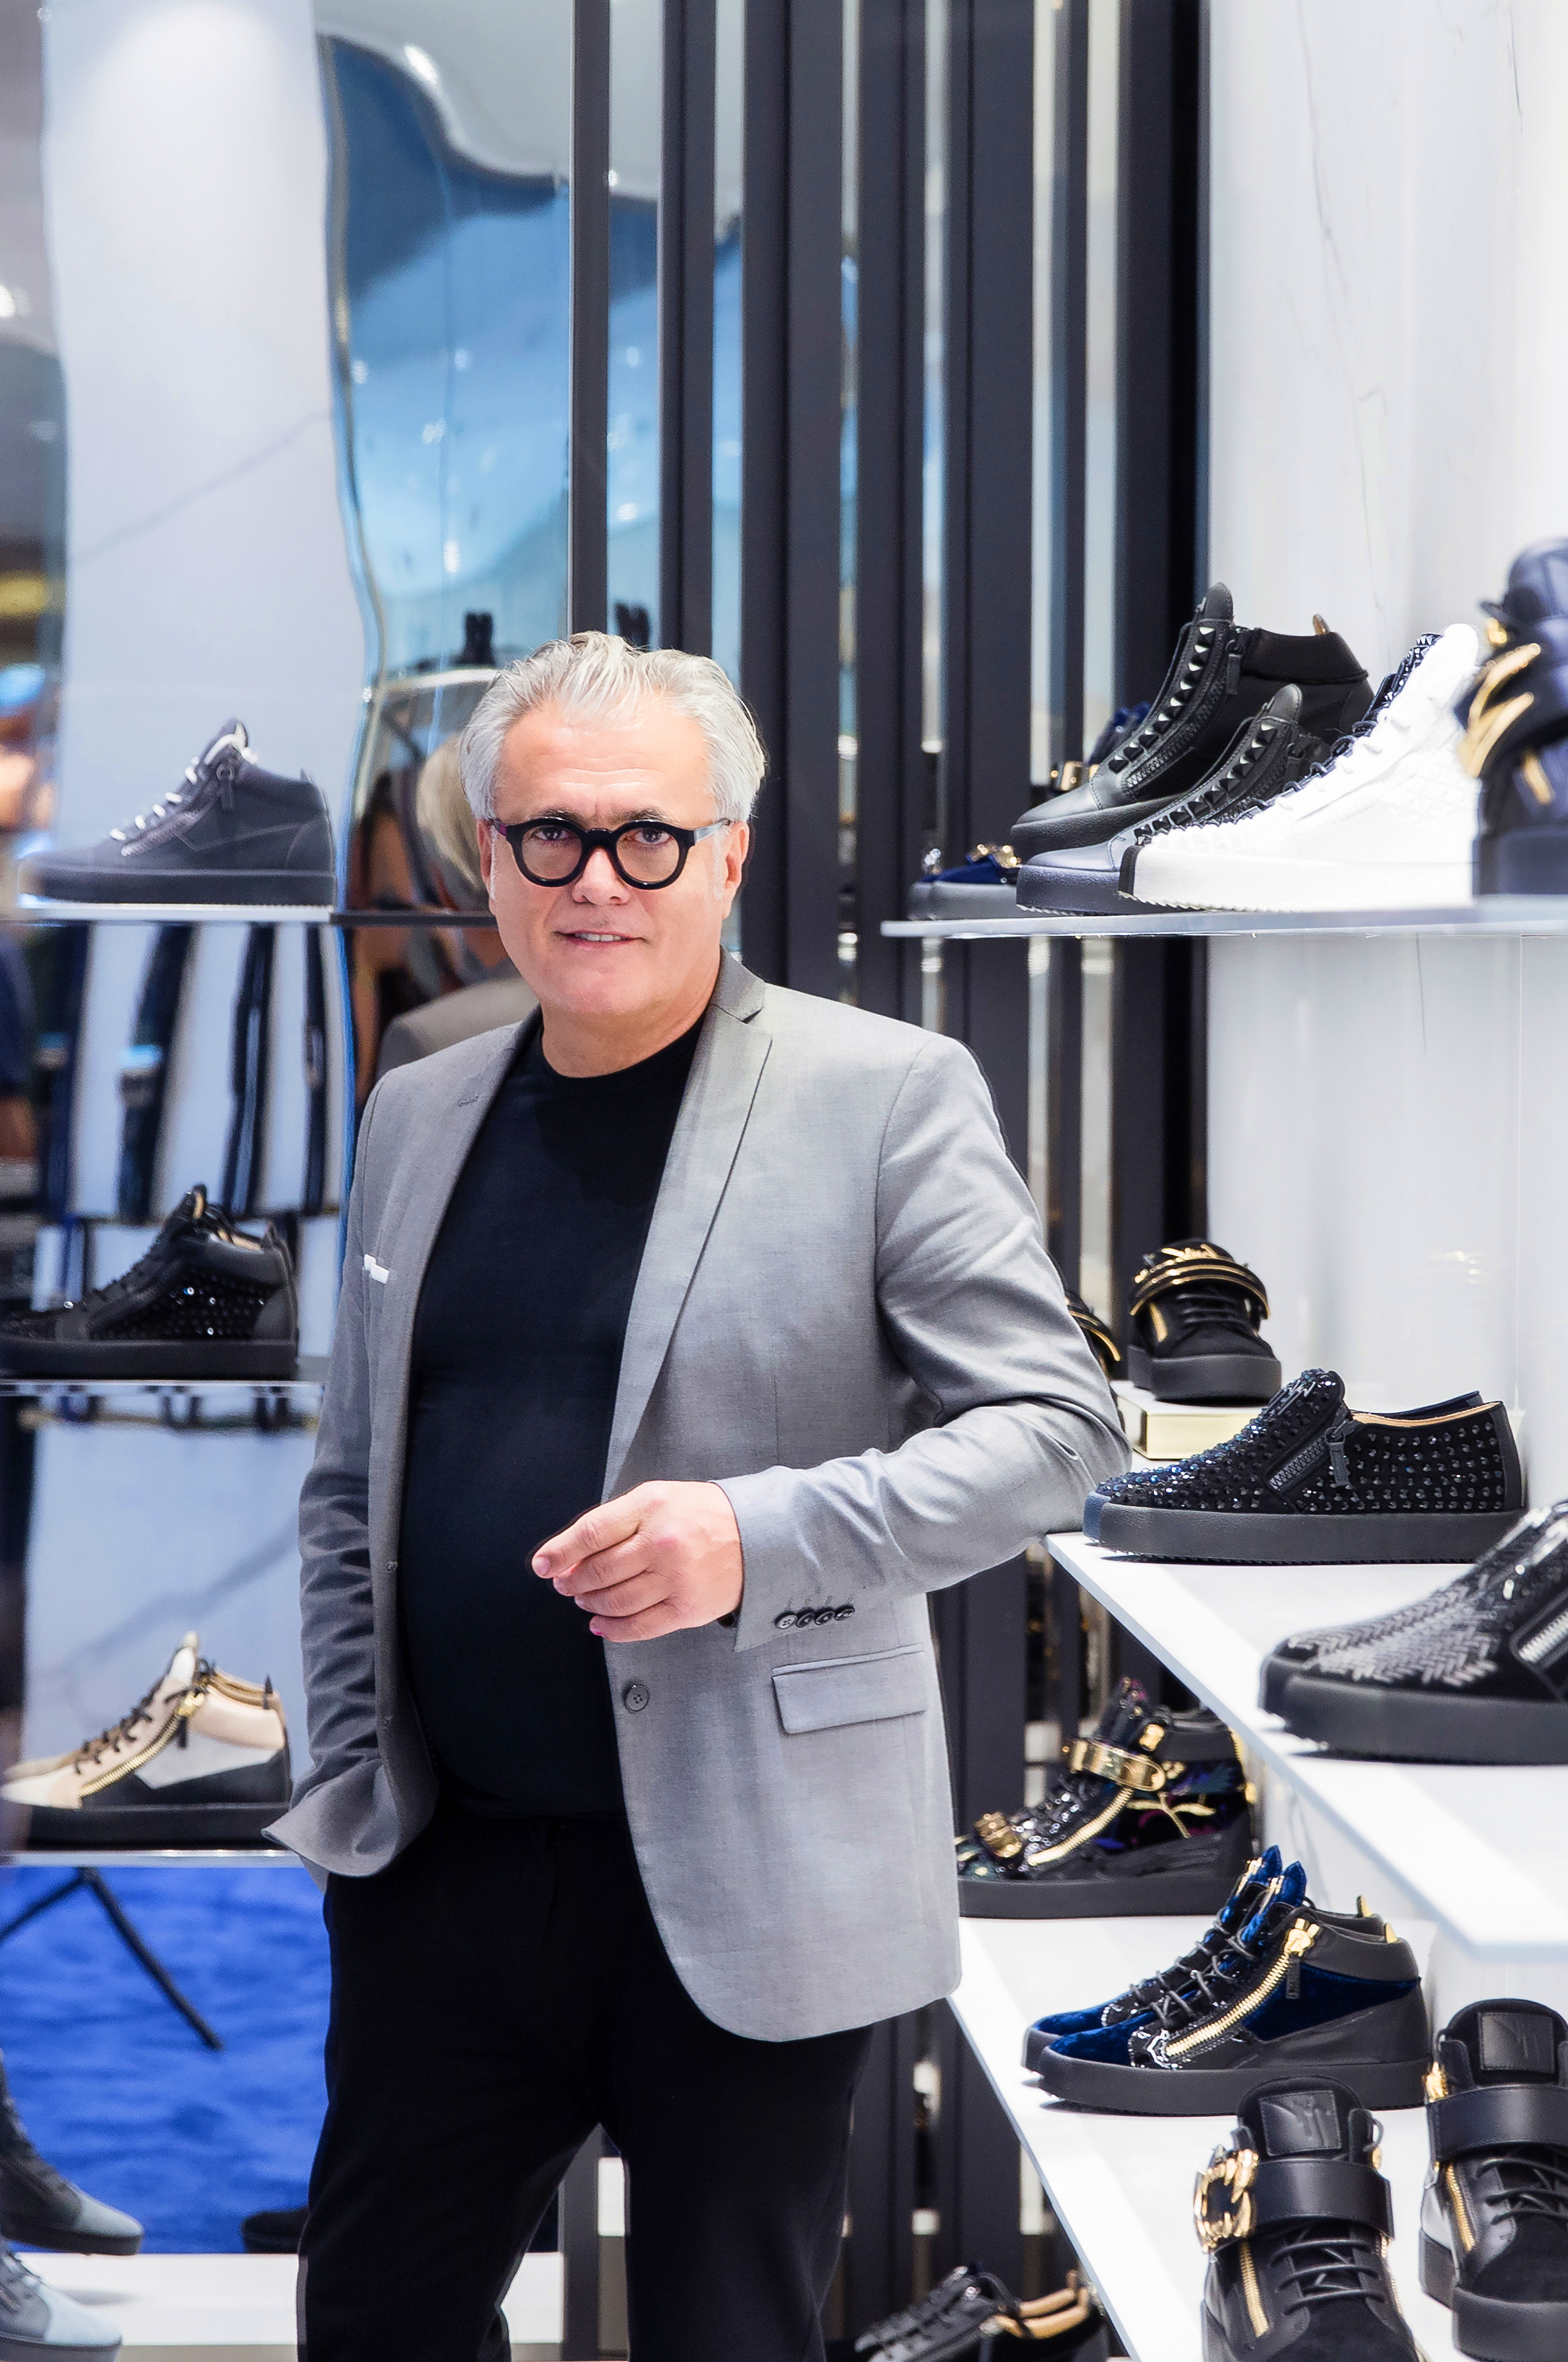 9217128f4dd34 Surrounded by sparkly shoes – his sparkly shoes – Giuseppe Zanotti wears a  neat black jacket. He has been taking pictures in his eponymous brand's  renovated ...